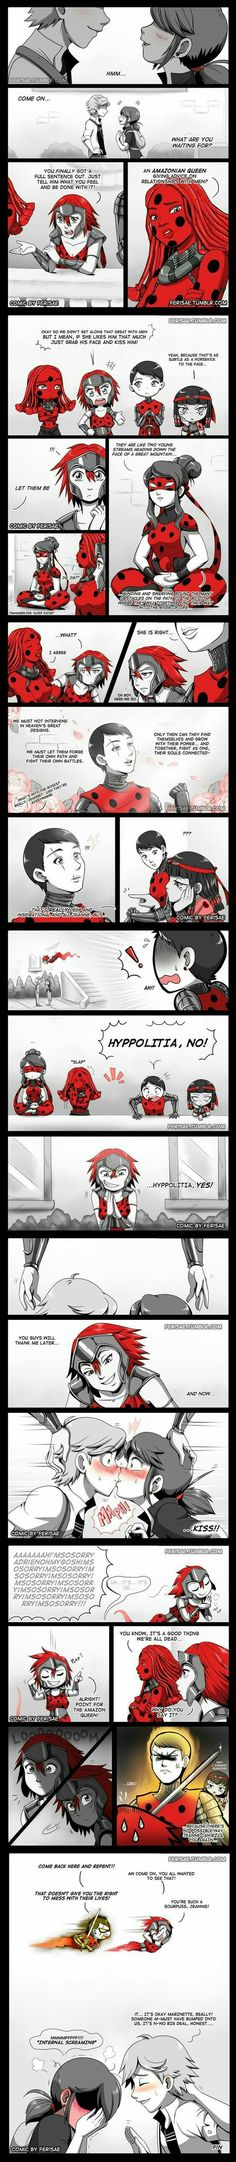 Past ladybugs giving relationship advice ;)